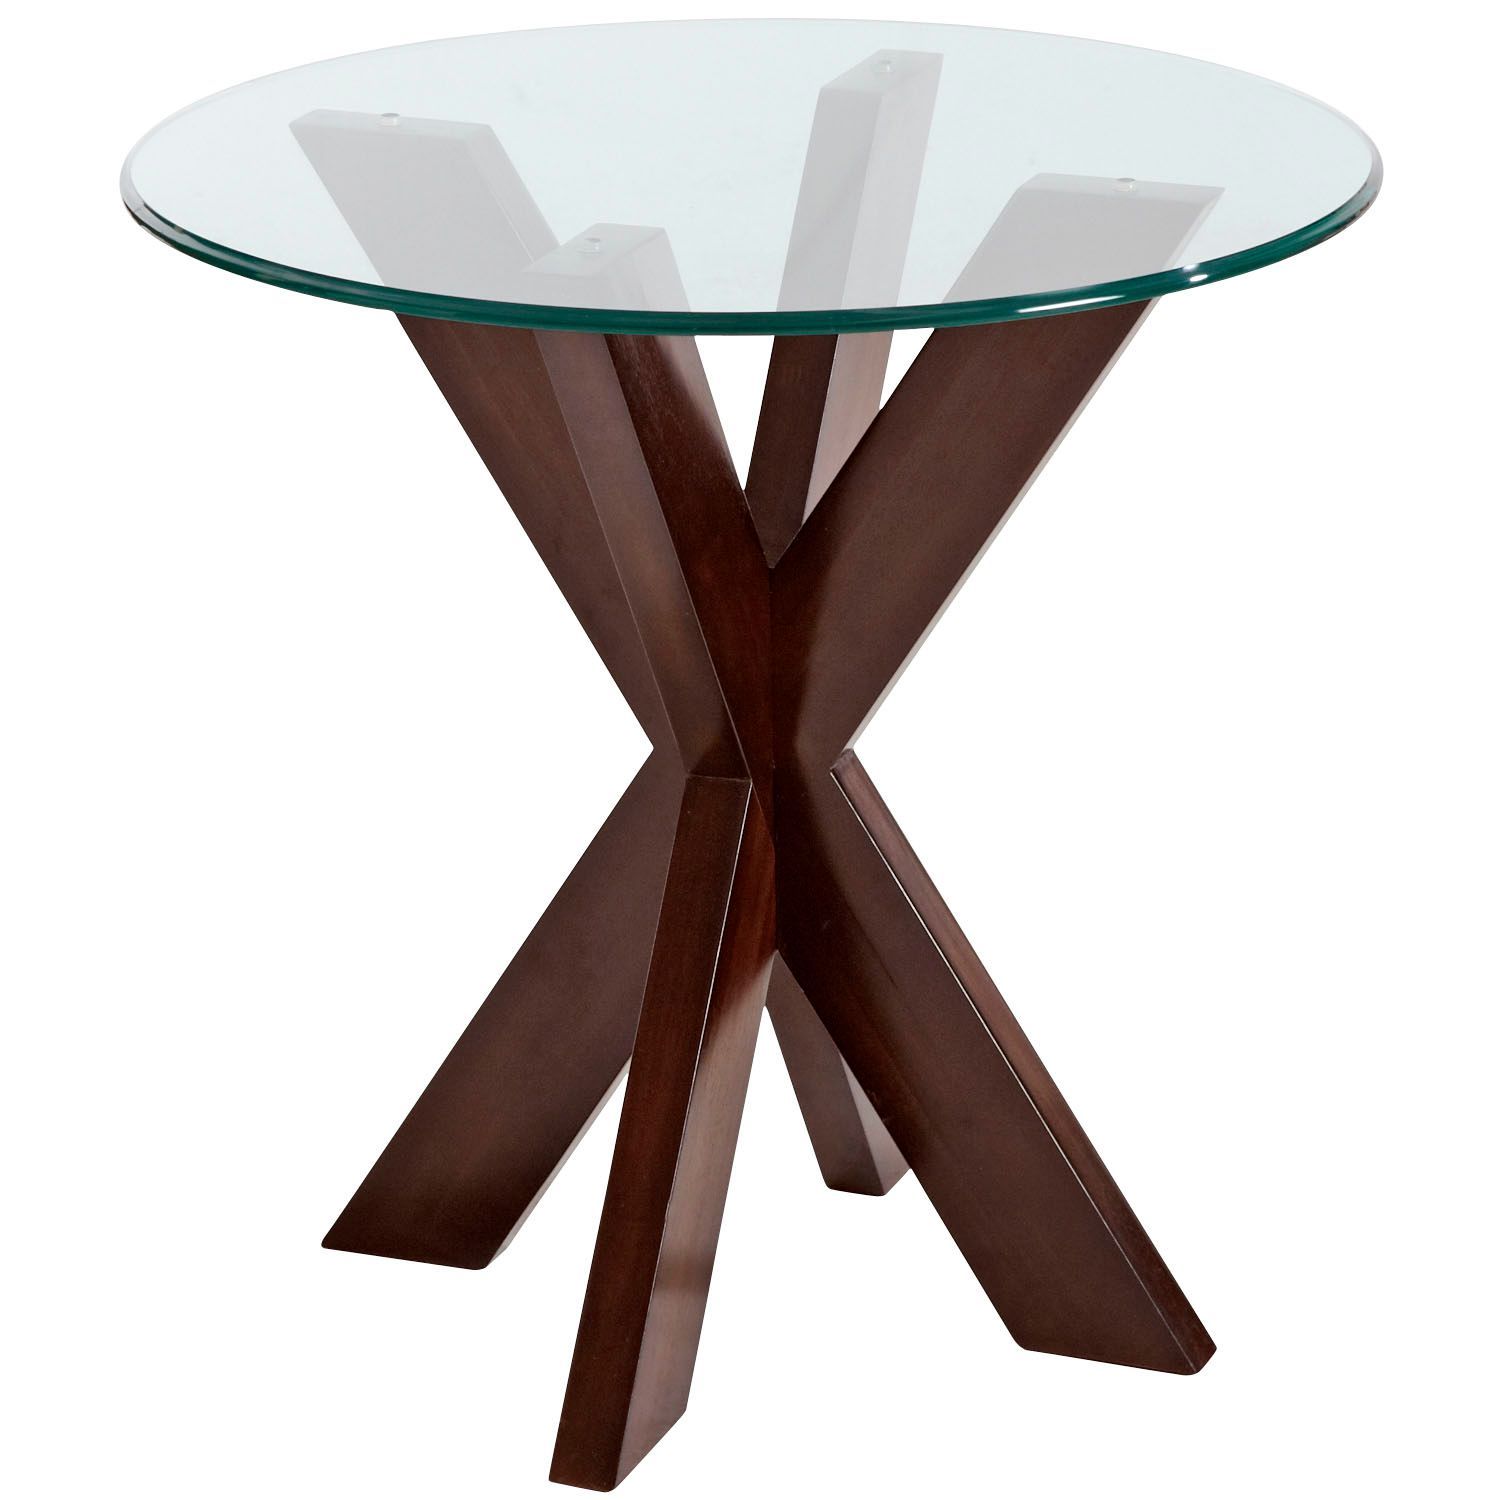 simon espresso end table base pier imports acacia wood accent collection round tablecloth sizes antique wall clocks kitchen placemats mid century modern popular coffee tables